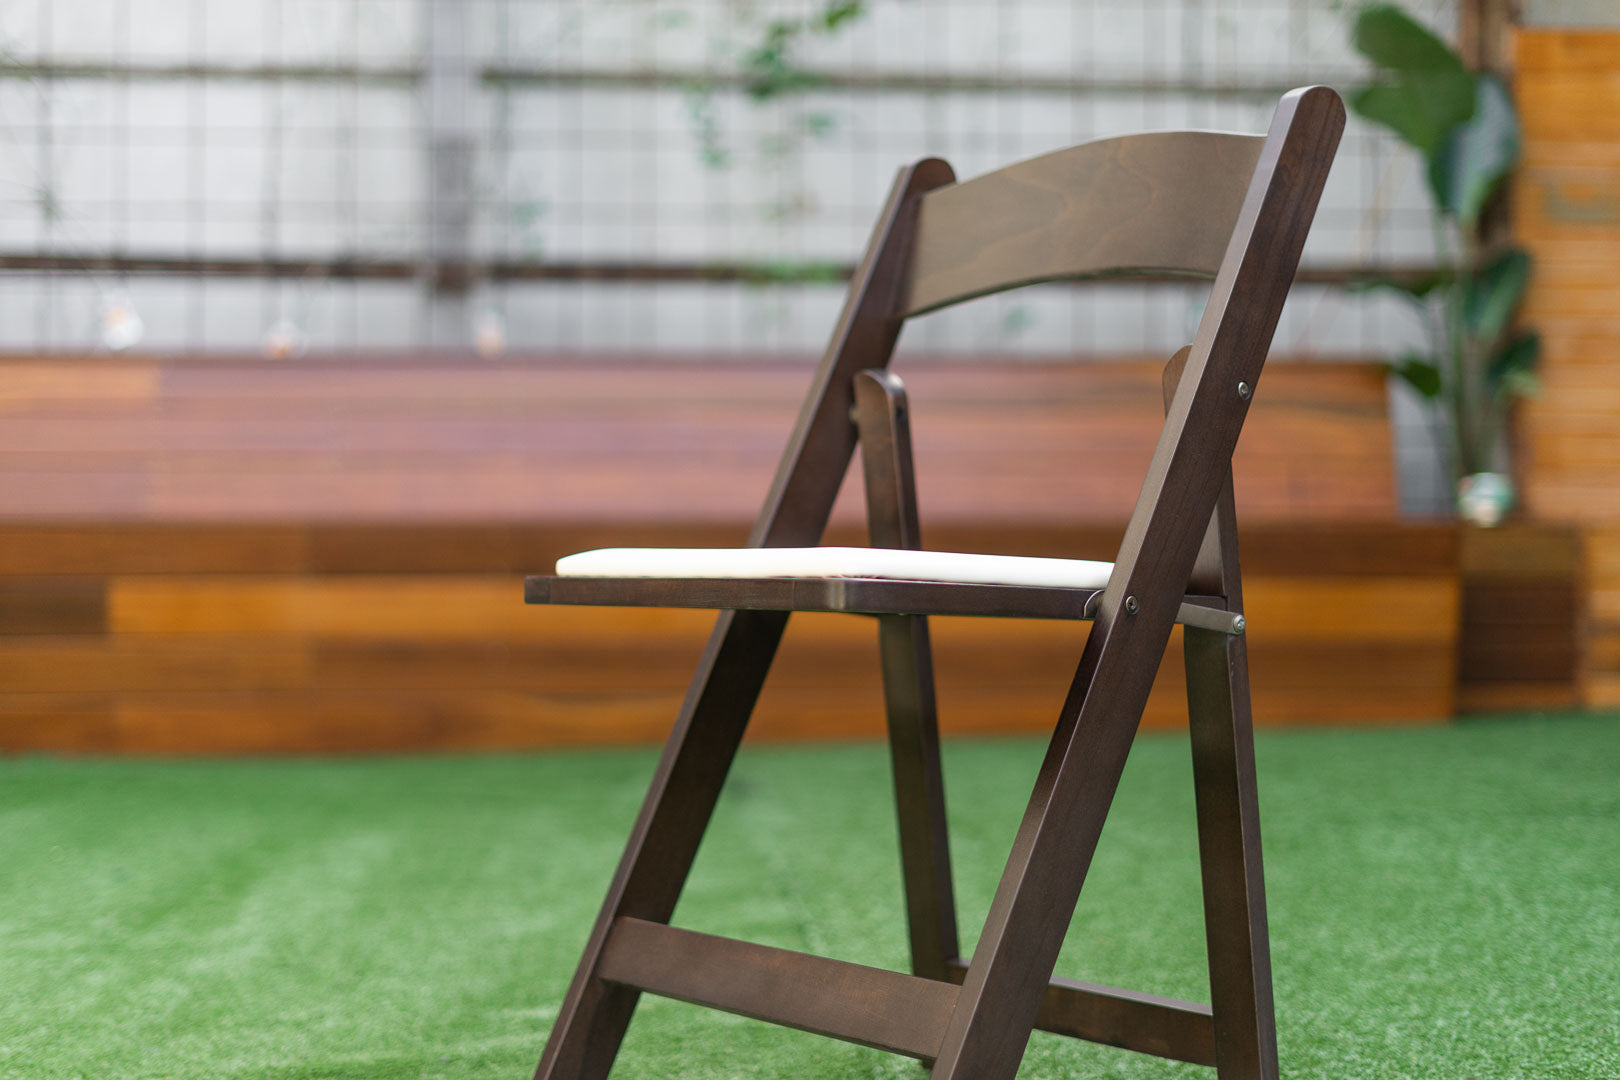 Timber Americana Chairs - Chocolate